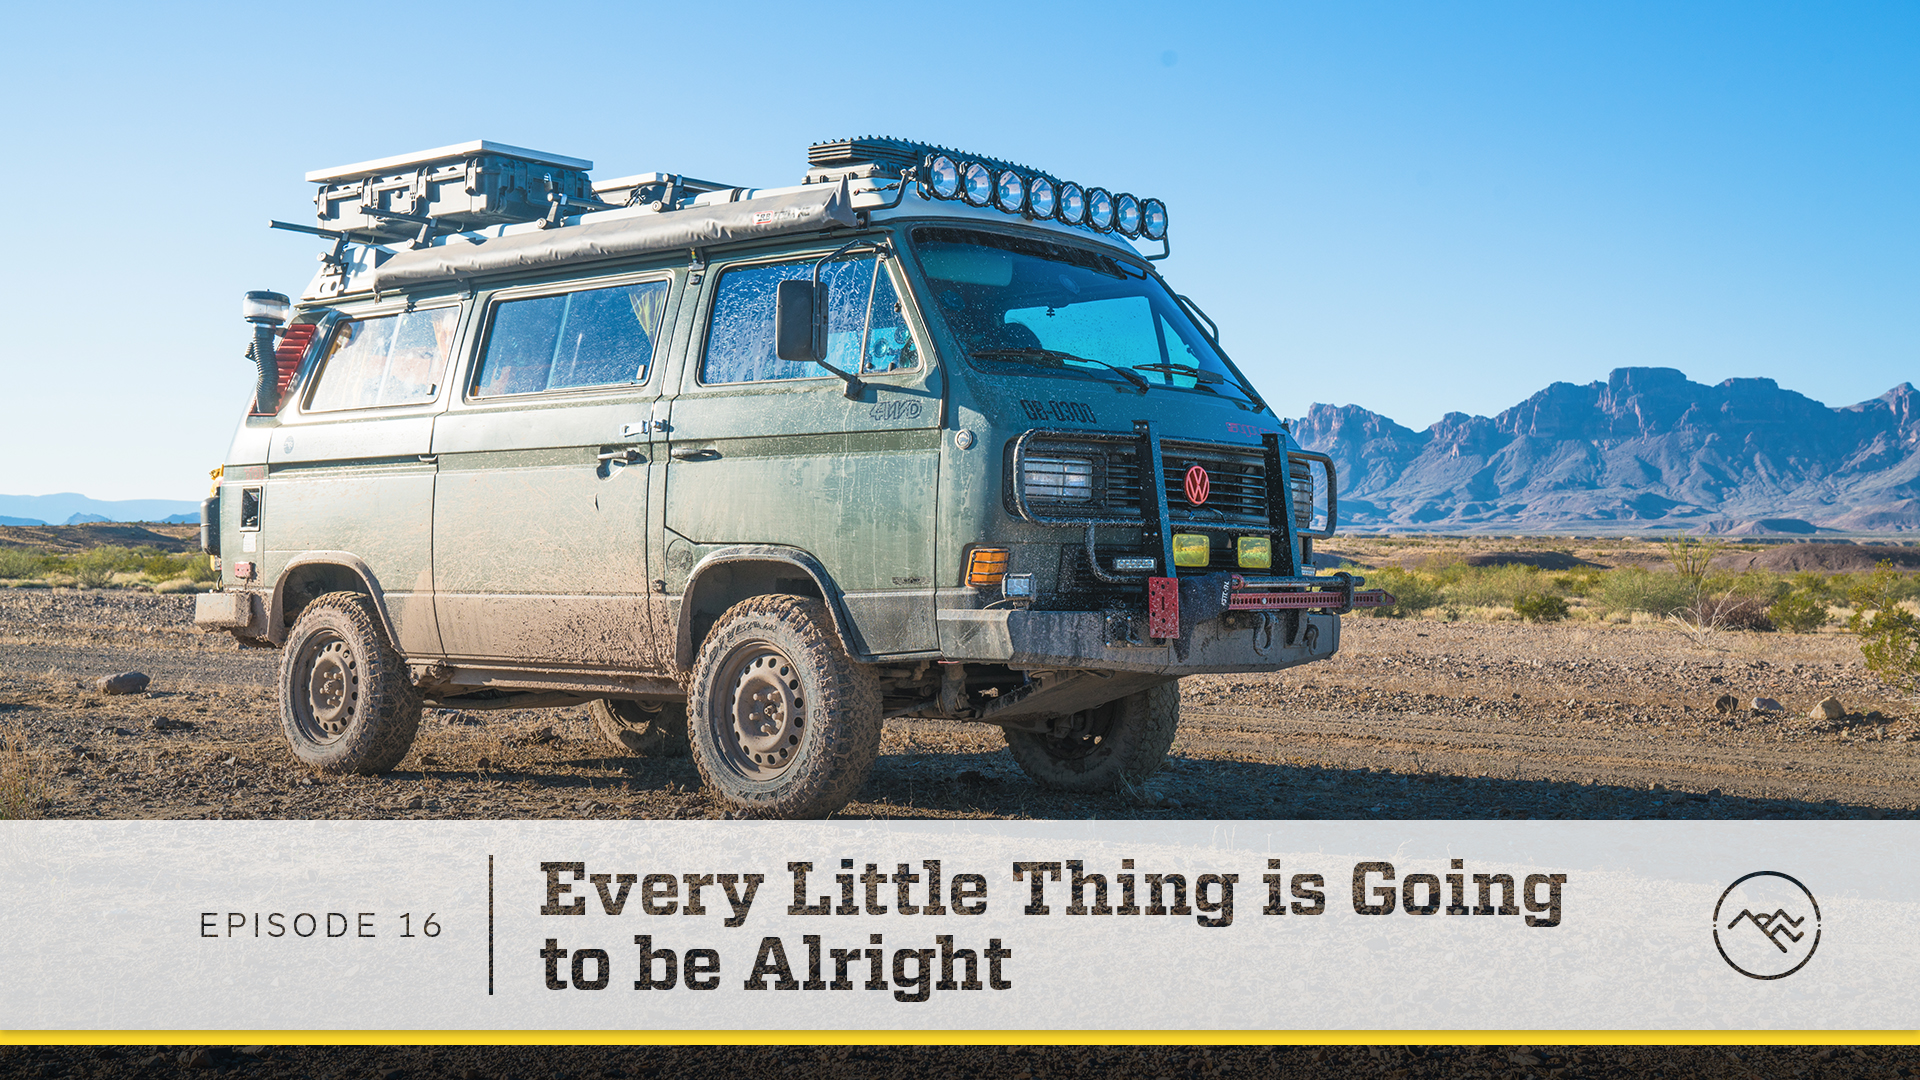 SEASON FINALE : E016 : Every Little Thing is Going to be Alright